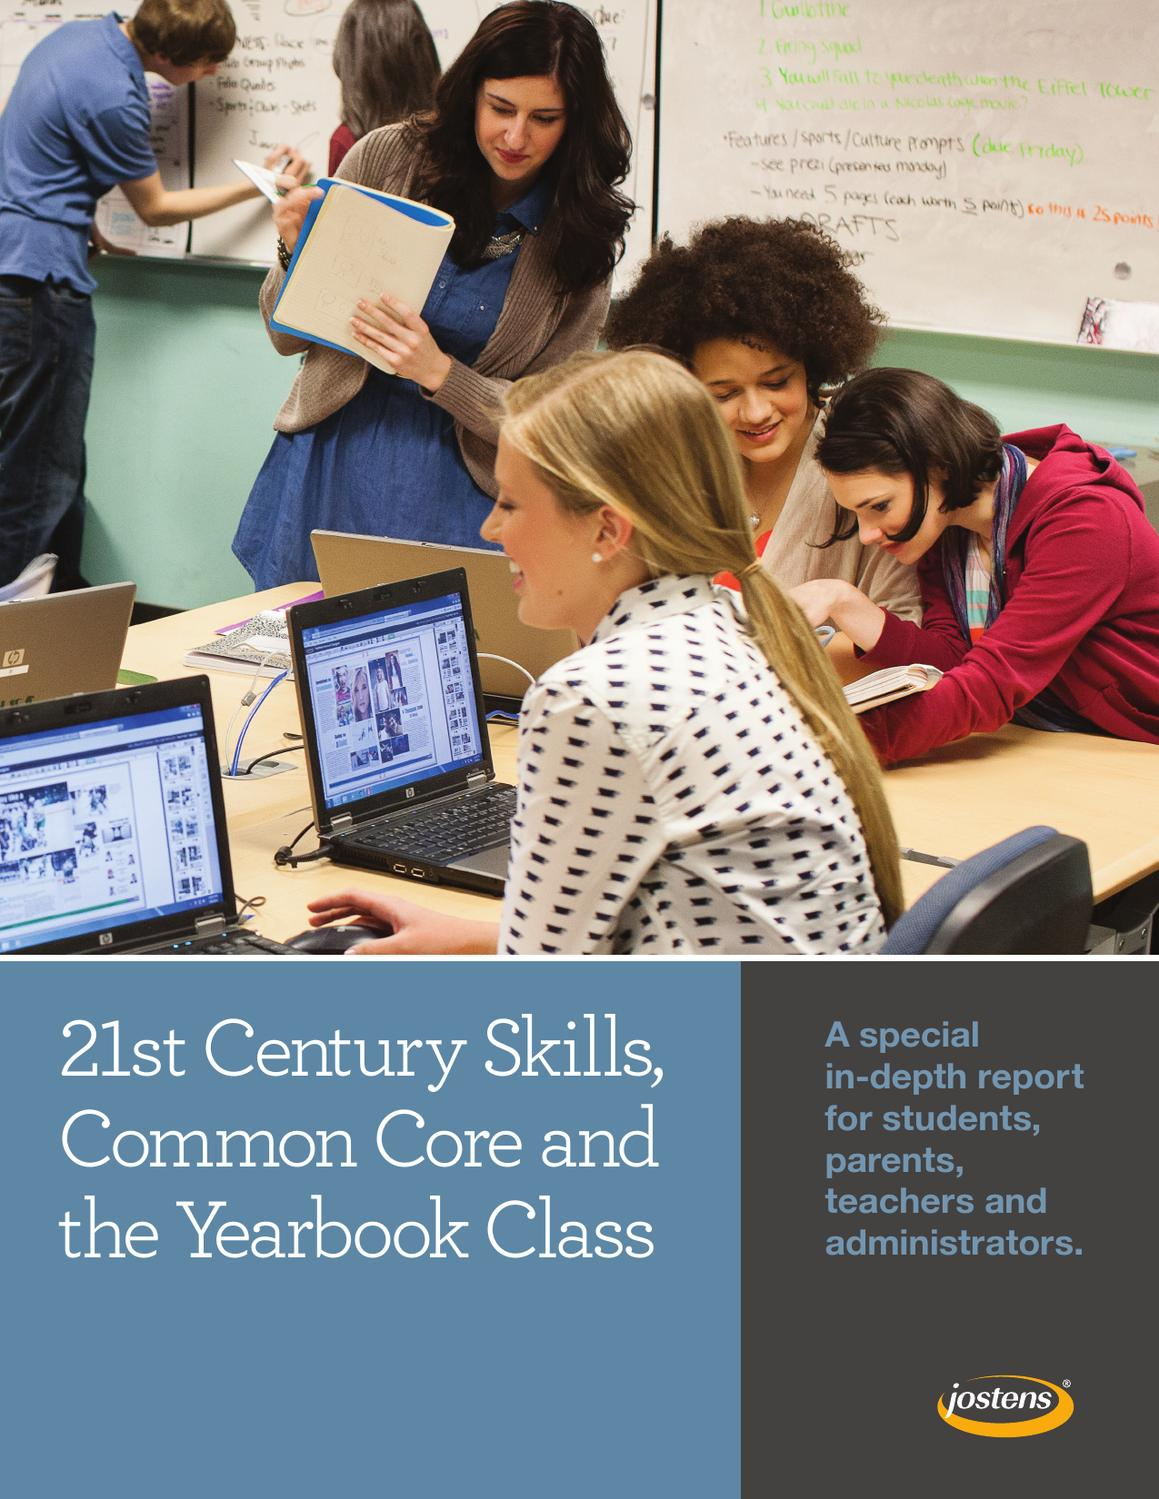 21st century skills common core and the yearbook class by jostens 21st century skills common core and the yearbook class by jostens issuu